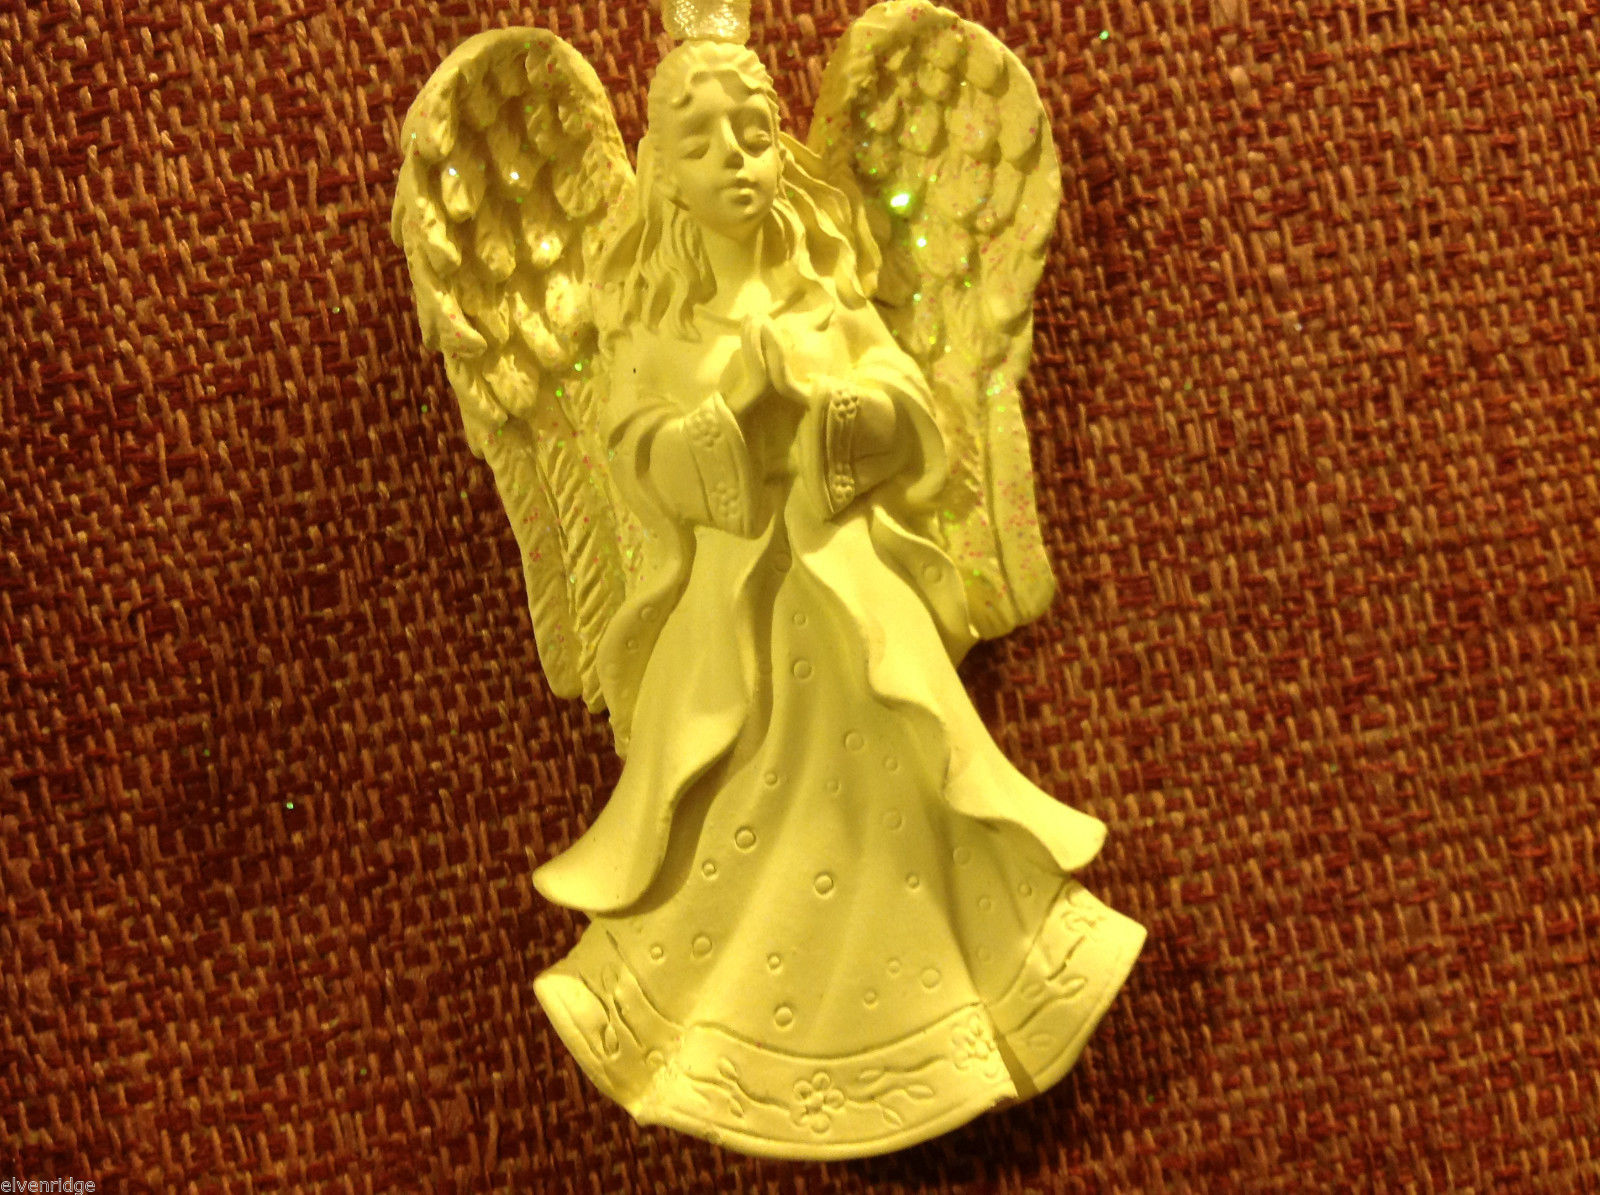 White angel ornament named Heaven's Blessings  in organza gift bag new with tags